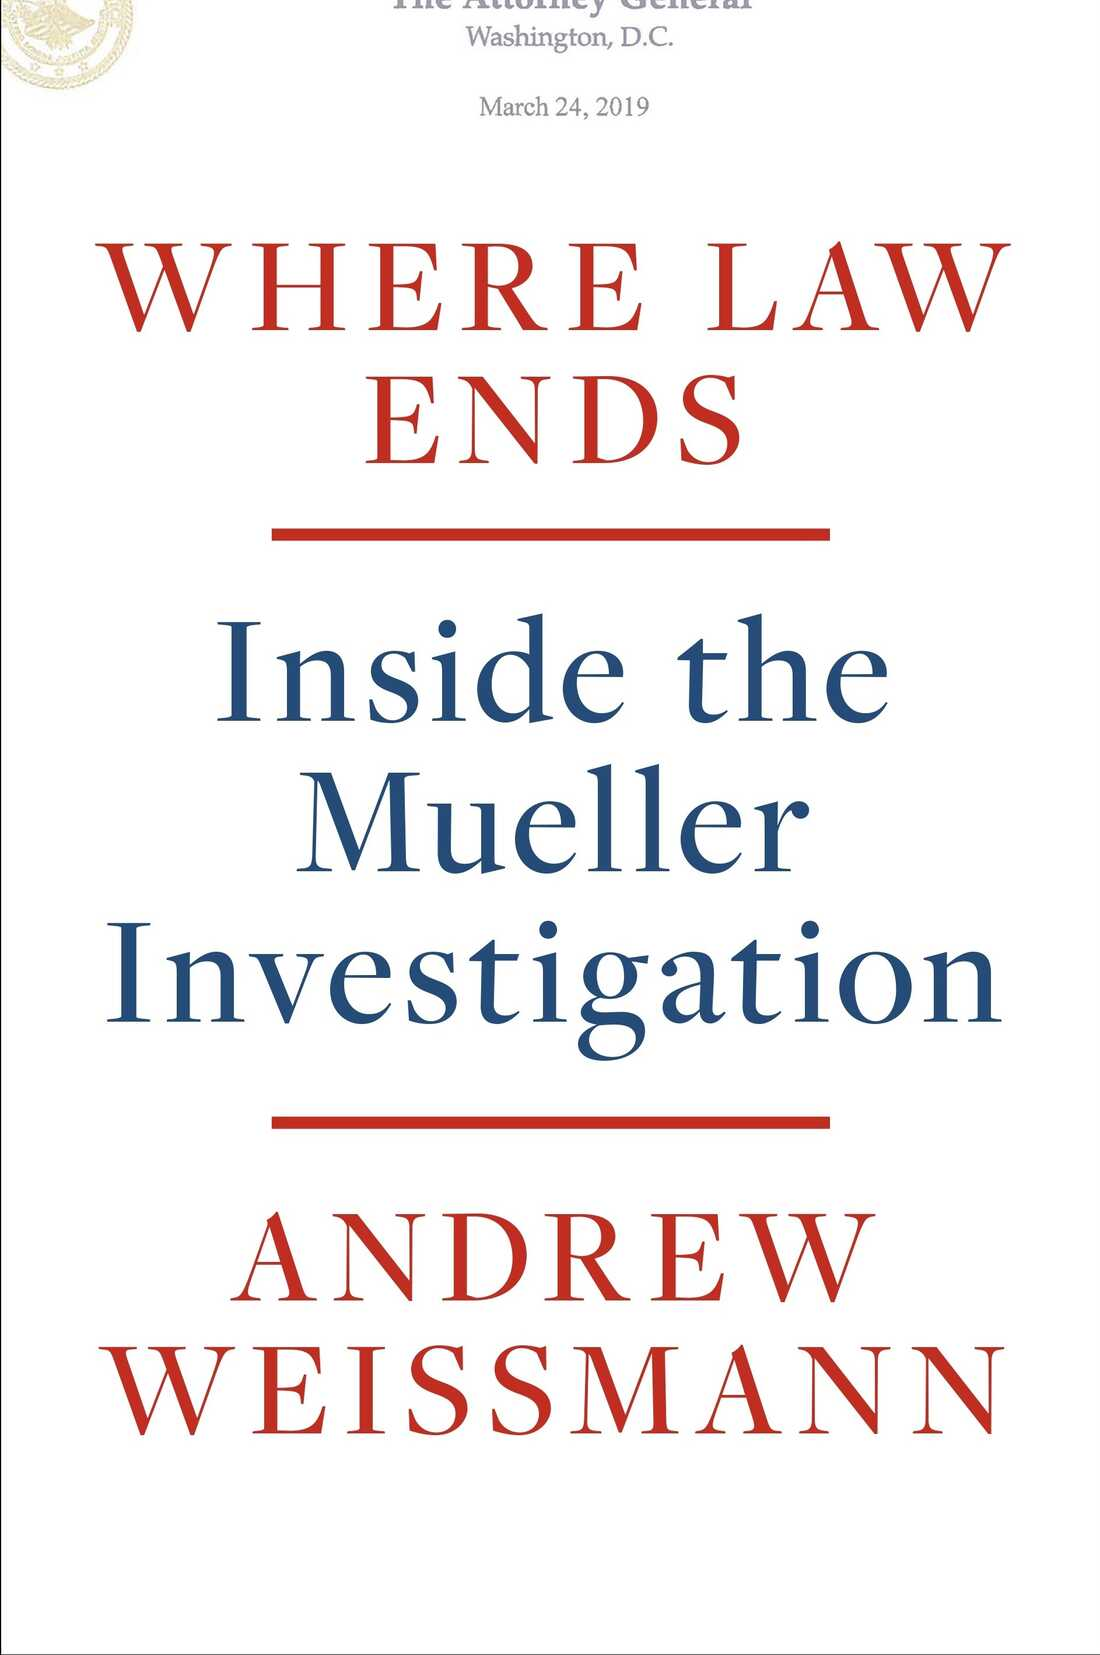 Where Law Ends, by Andrew Weissmann